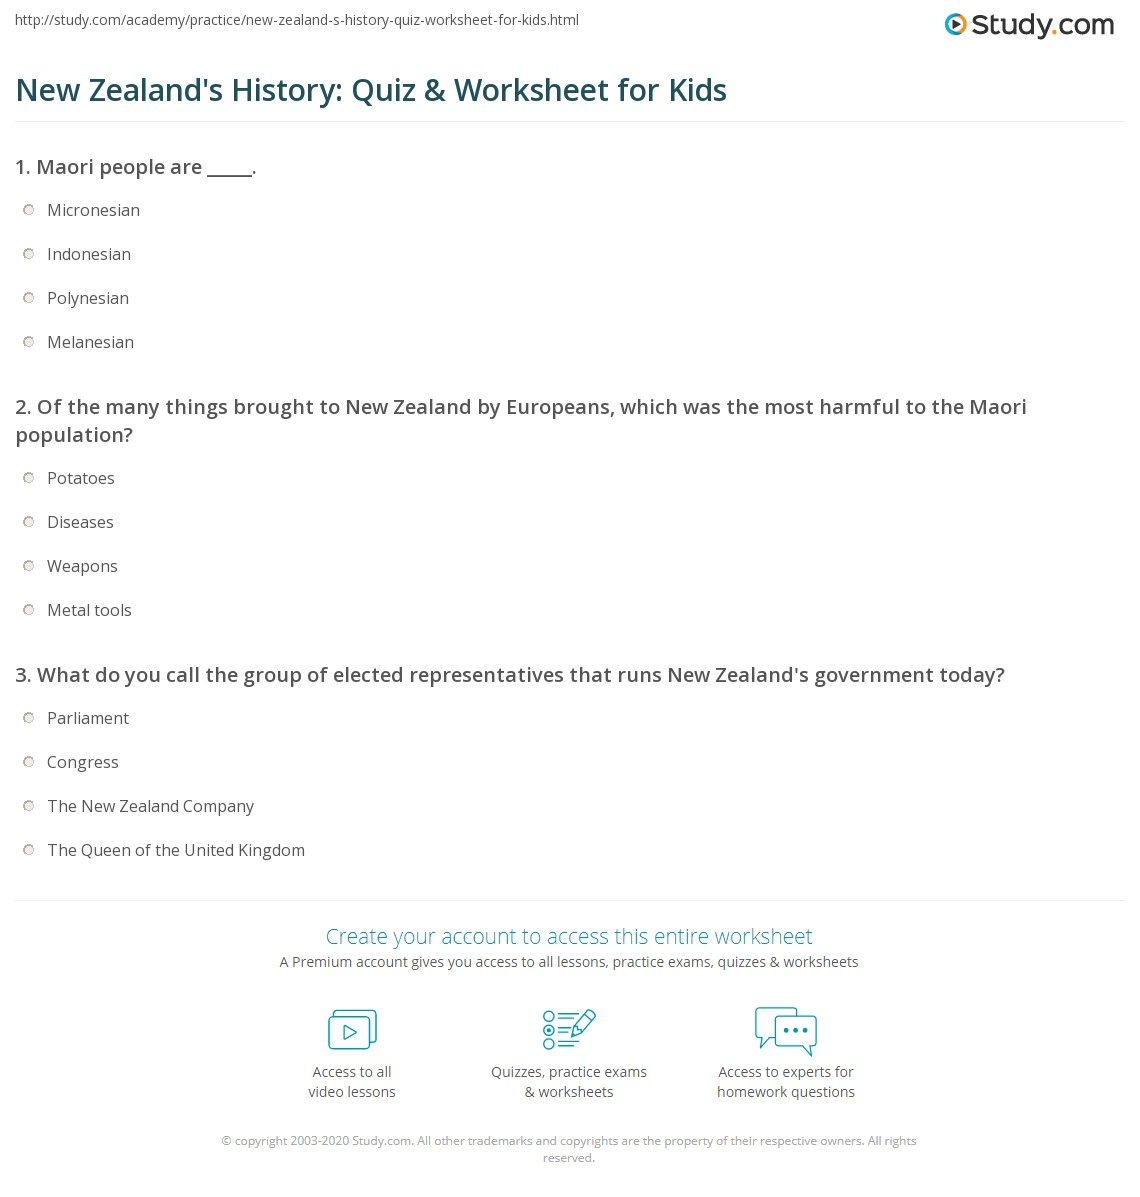 math worksheet : basic facts math worksheets nz  basic facts math worksheets nz  : Math Superstars Worksheets